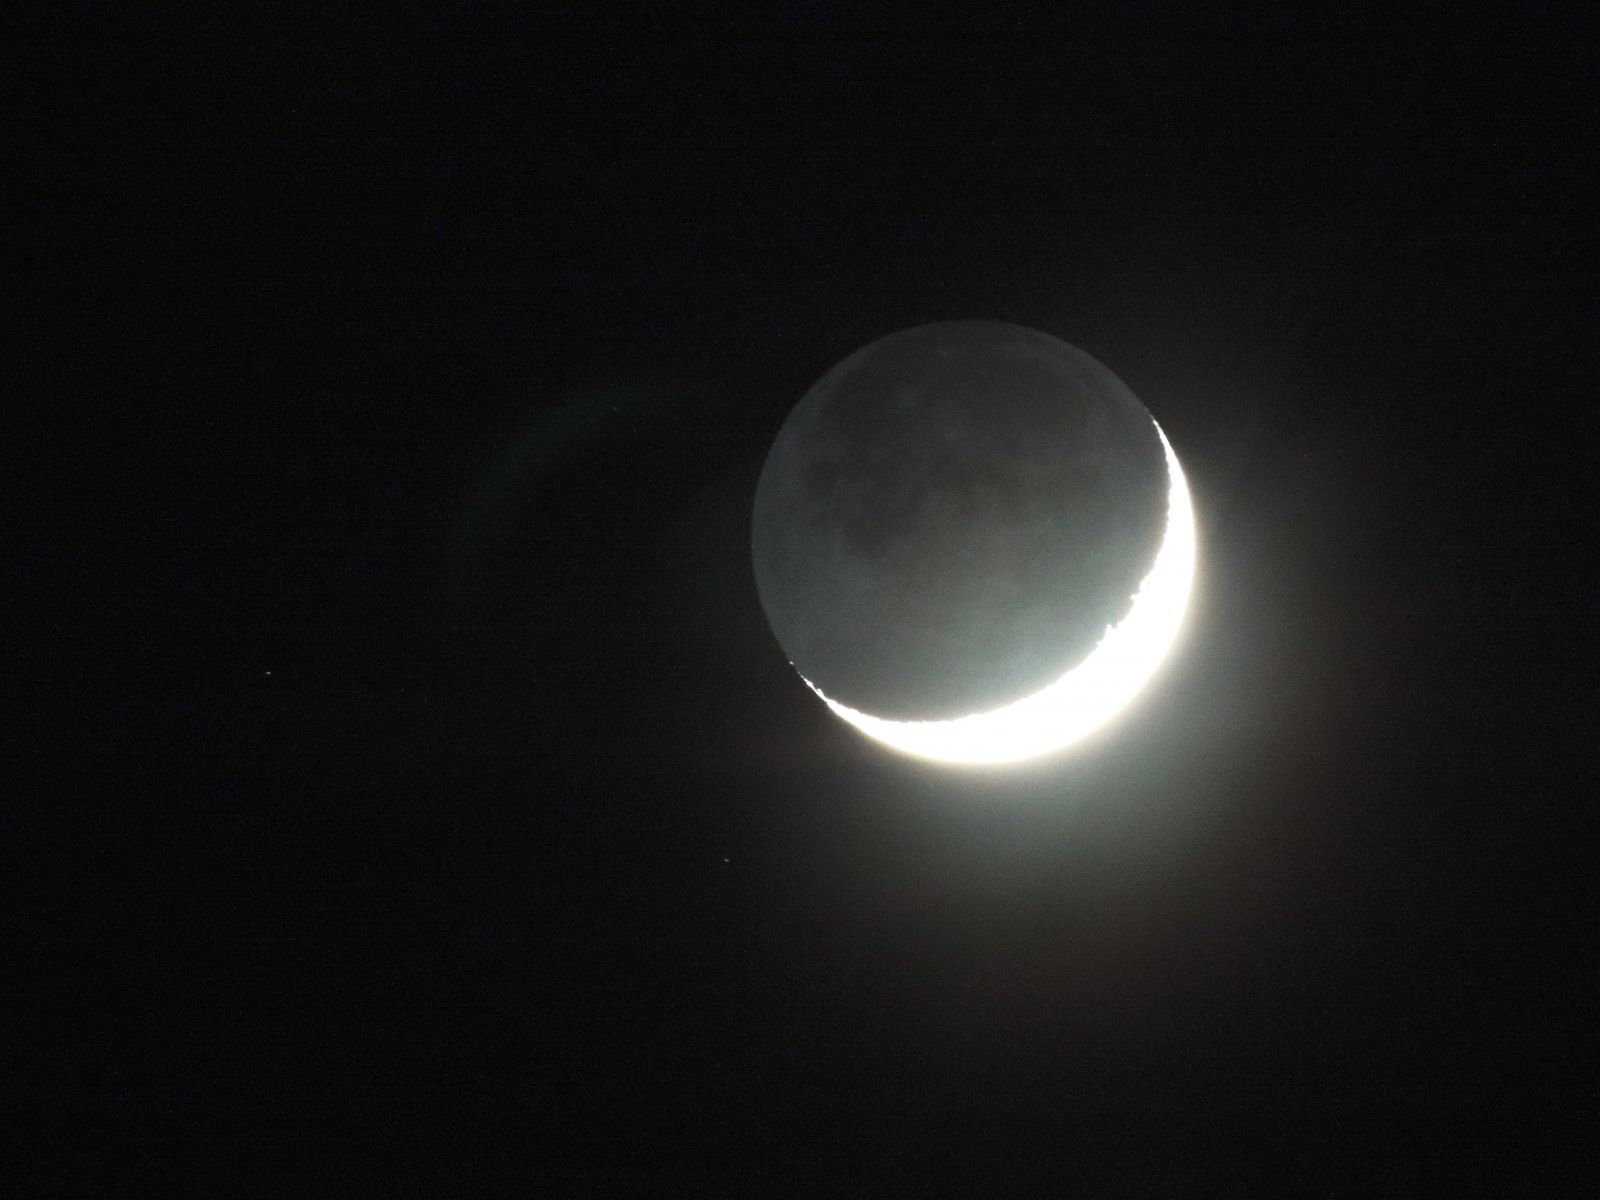 Last Night I Saw The New Moon with The Old Moon In Her arms.